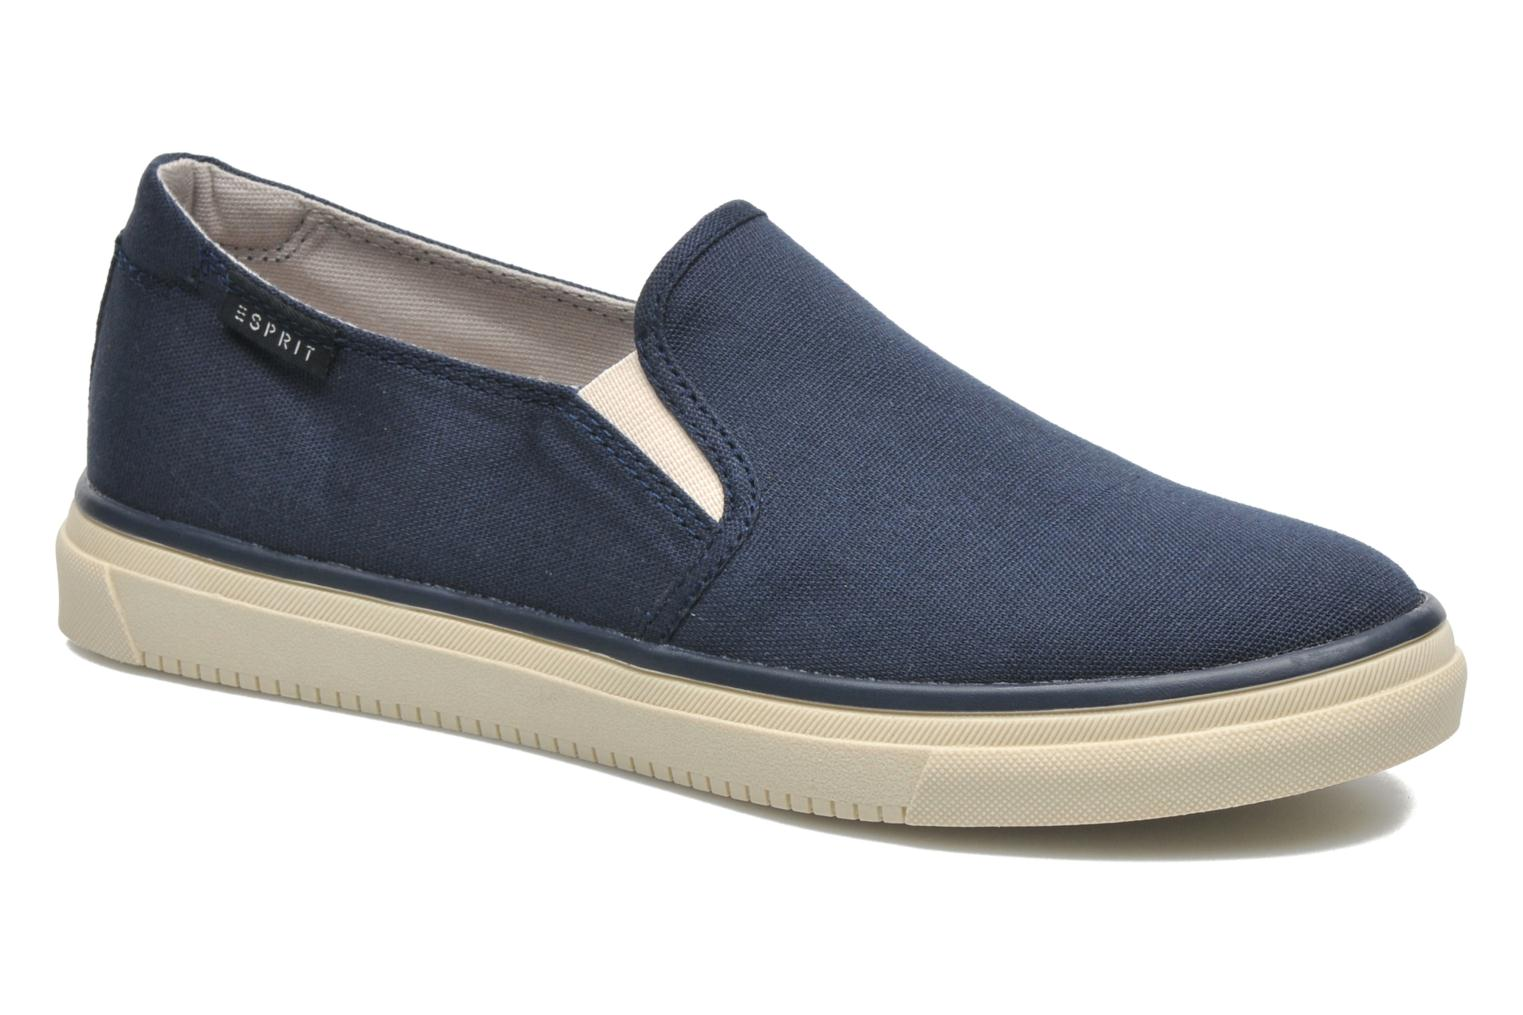 Yendis slip on 040 DARK NIGHT BLUE 411